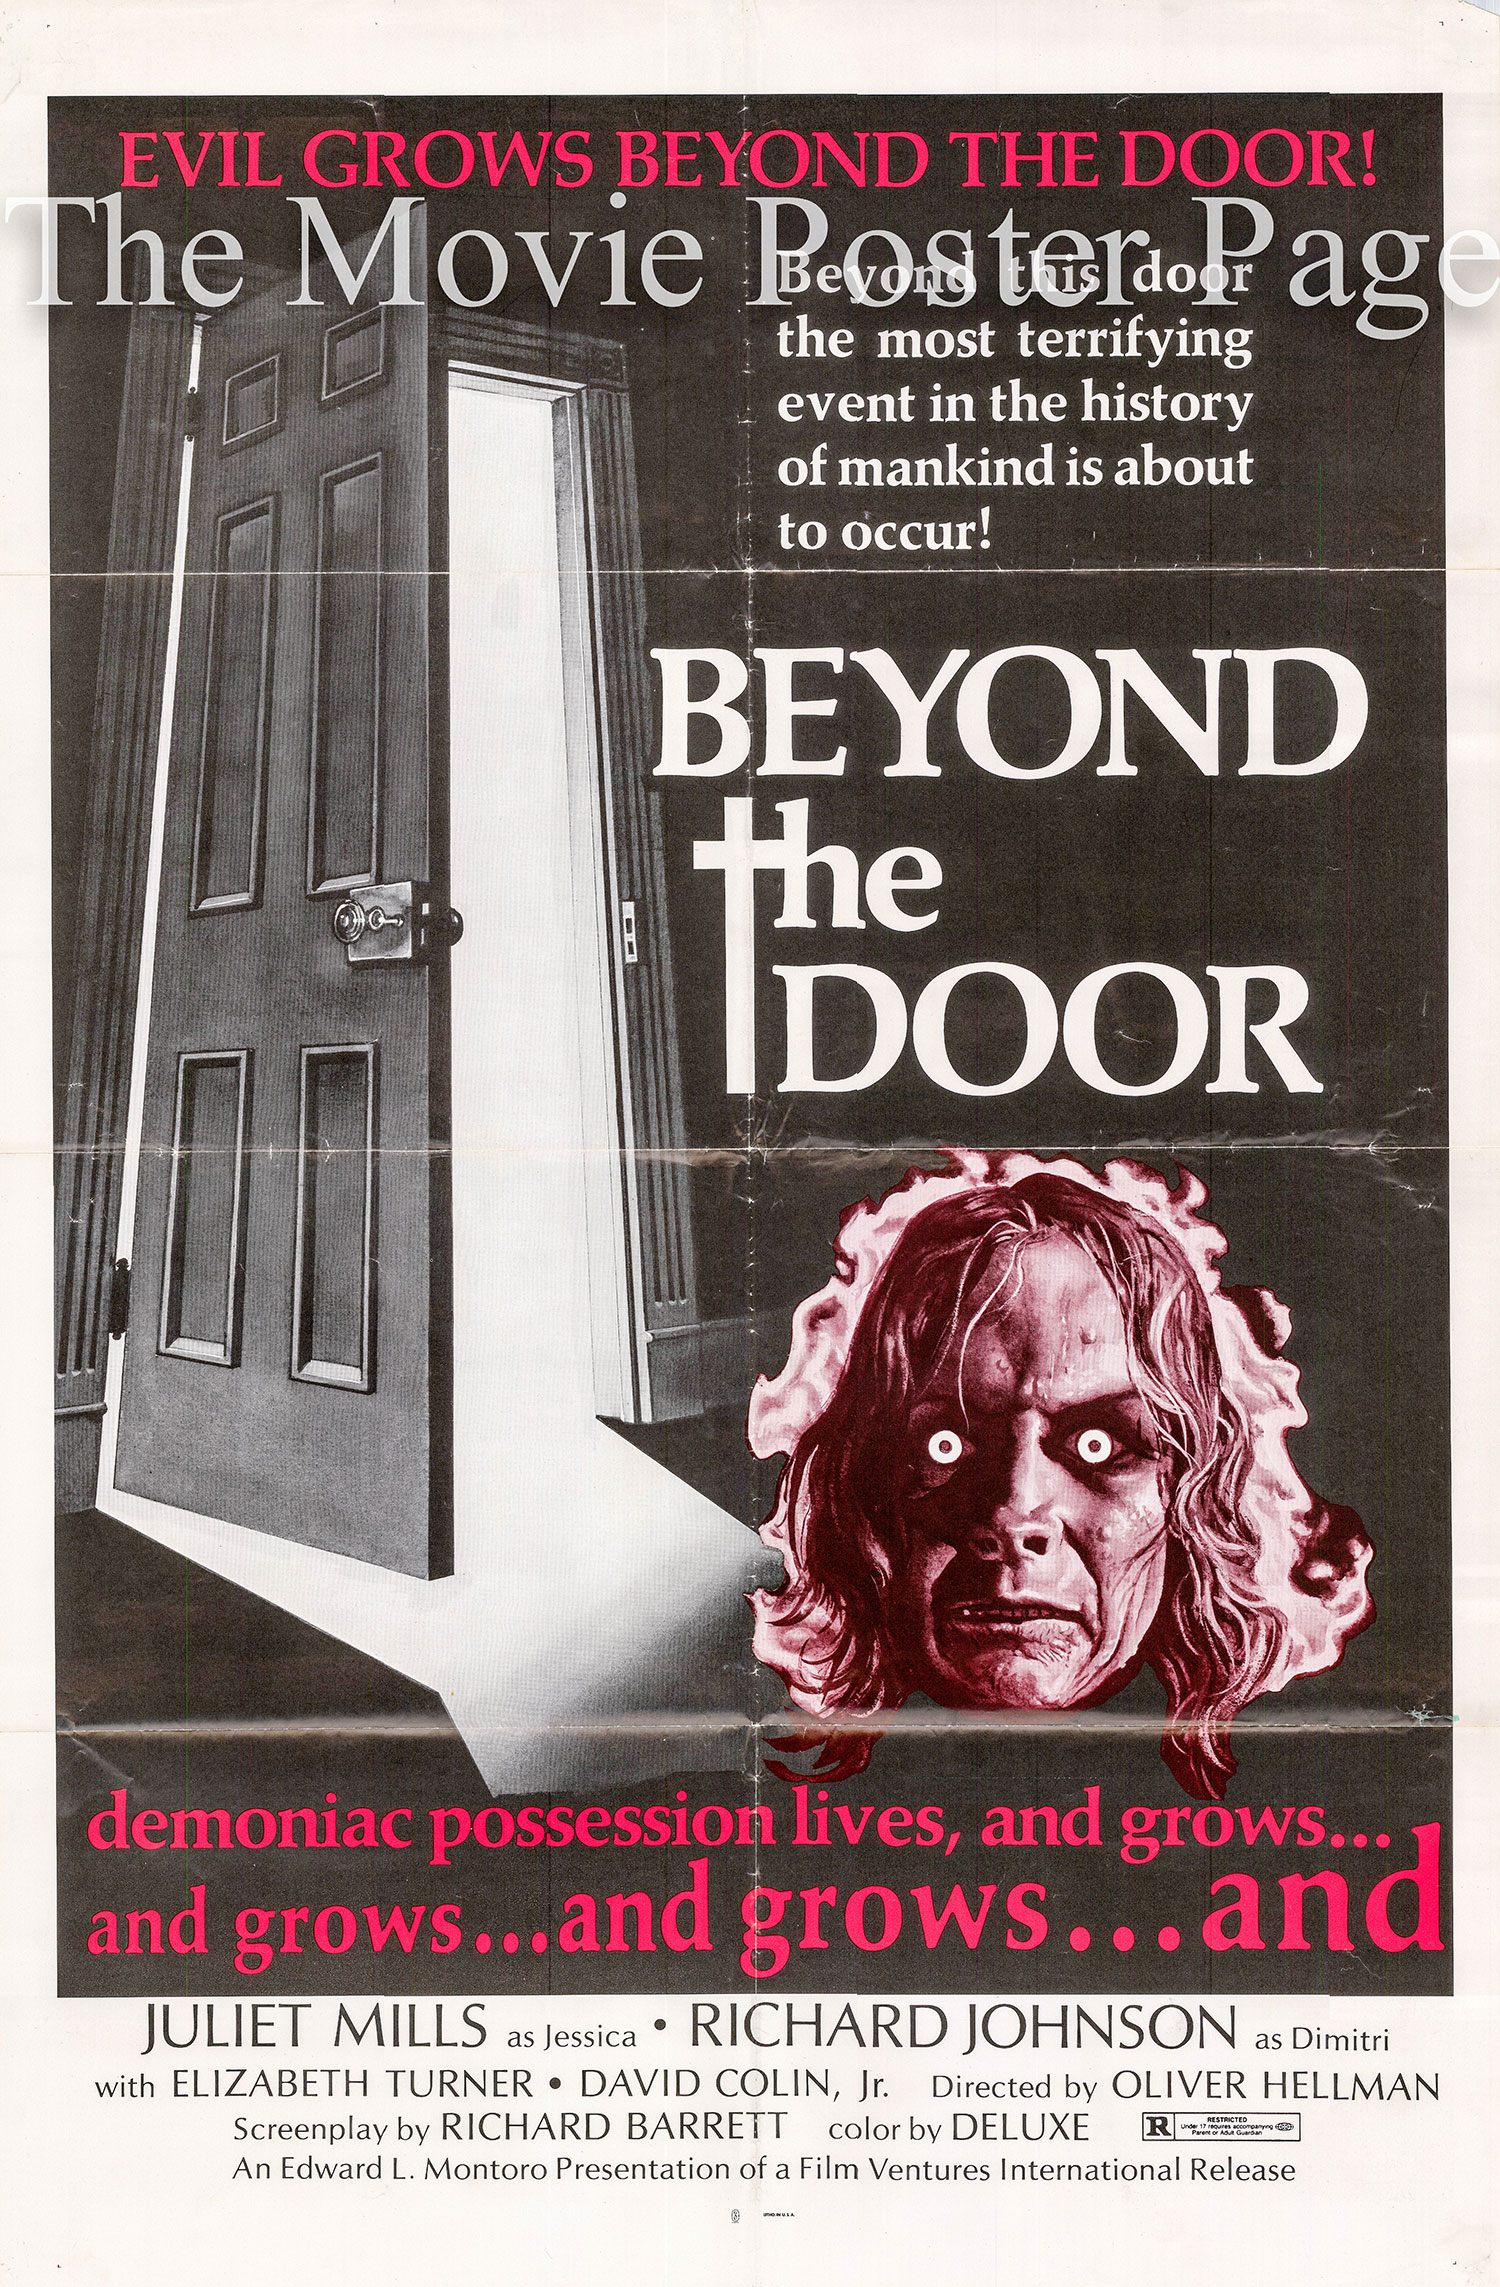 Pictured is a US one-sheet poster for the 1974 Ovidio G. Assonitis and Robert Barrett film Beyond the Door starring Juliet Mills.